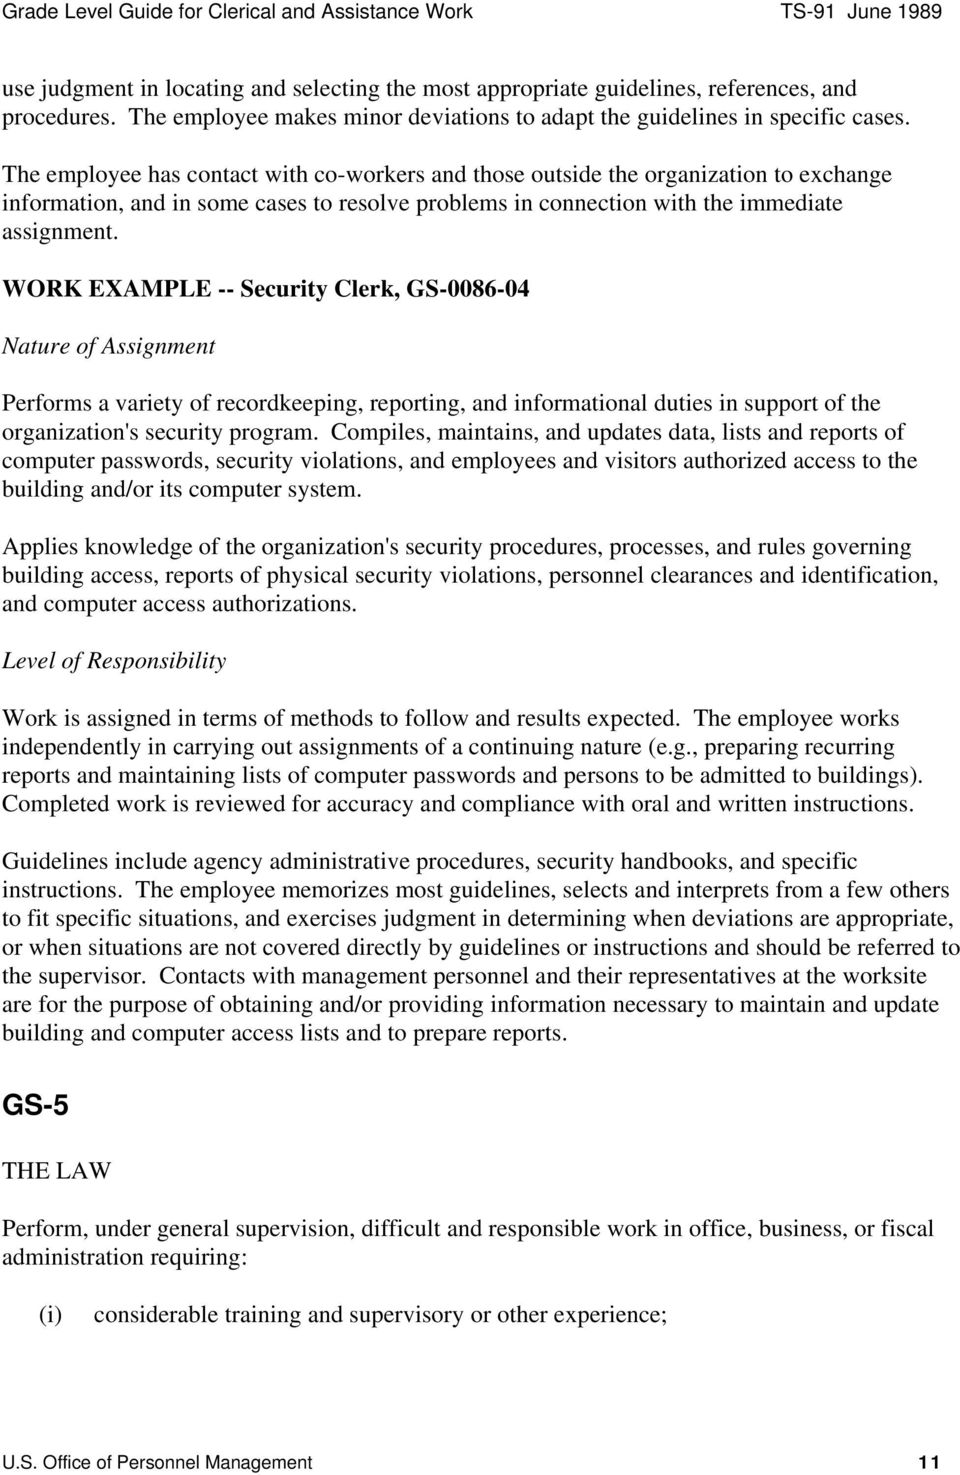 WORK EXAMPLE -- Security Clerk, GS-0086-04 Performs a variety of recordkeeping, reporting, and informational duties in support of the organization's security program.